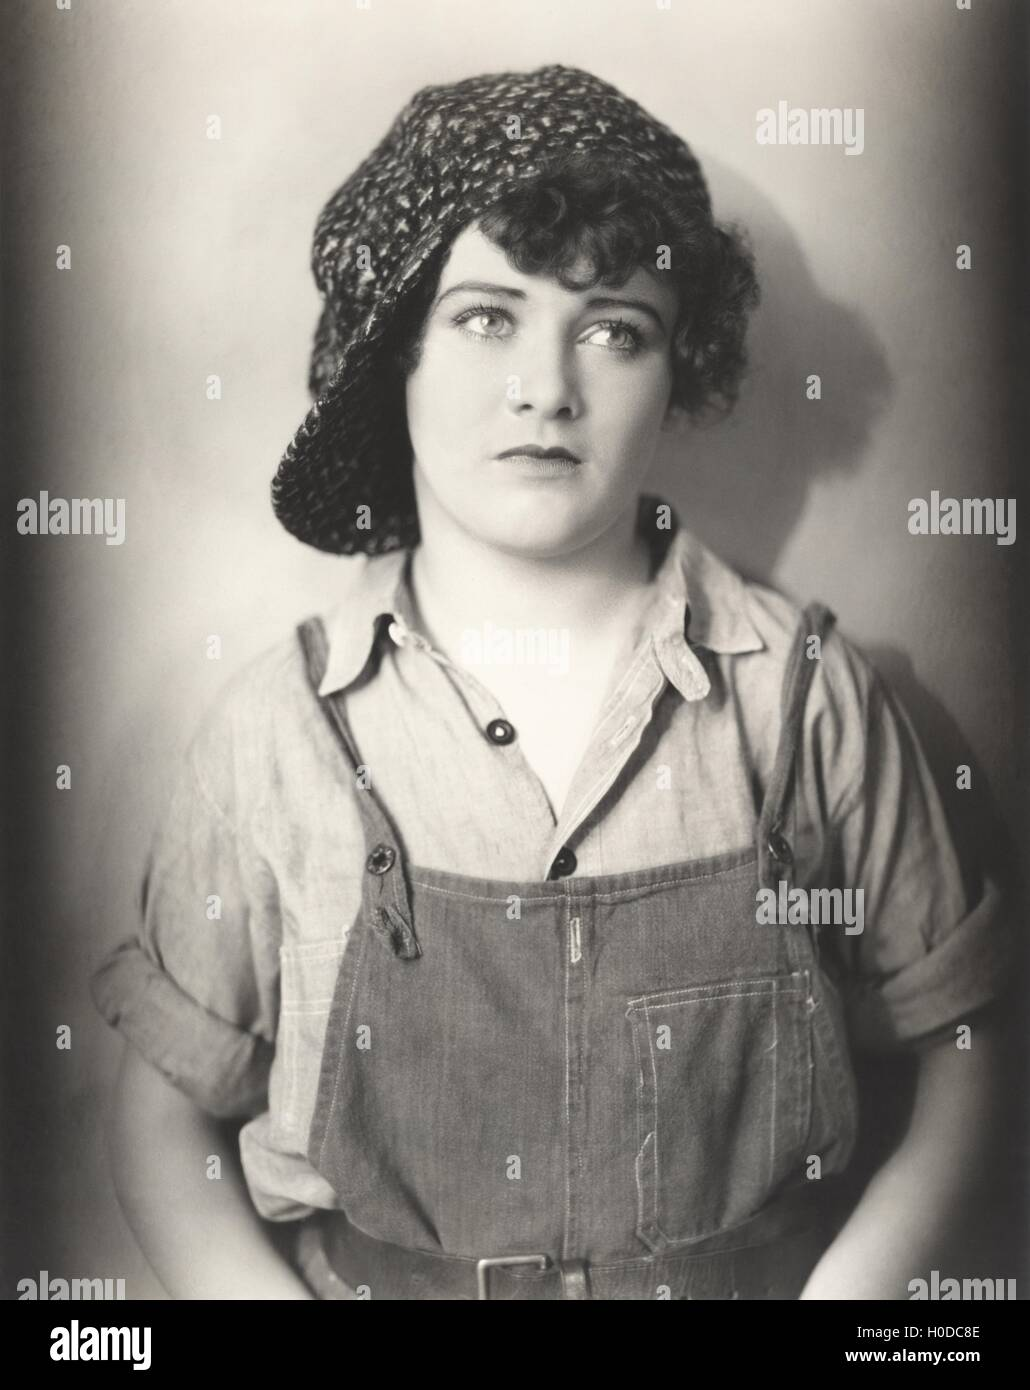 Woman in backwards cap and bib overalls - Stock Image